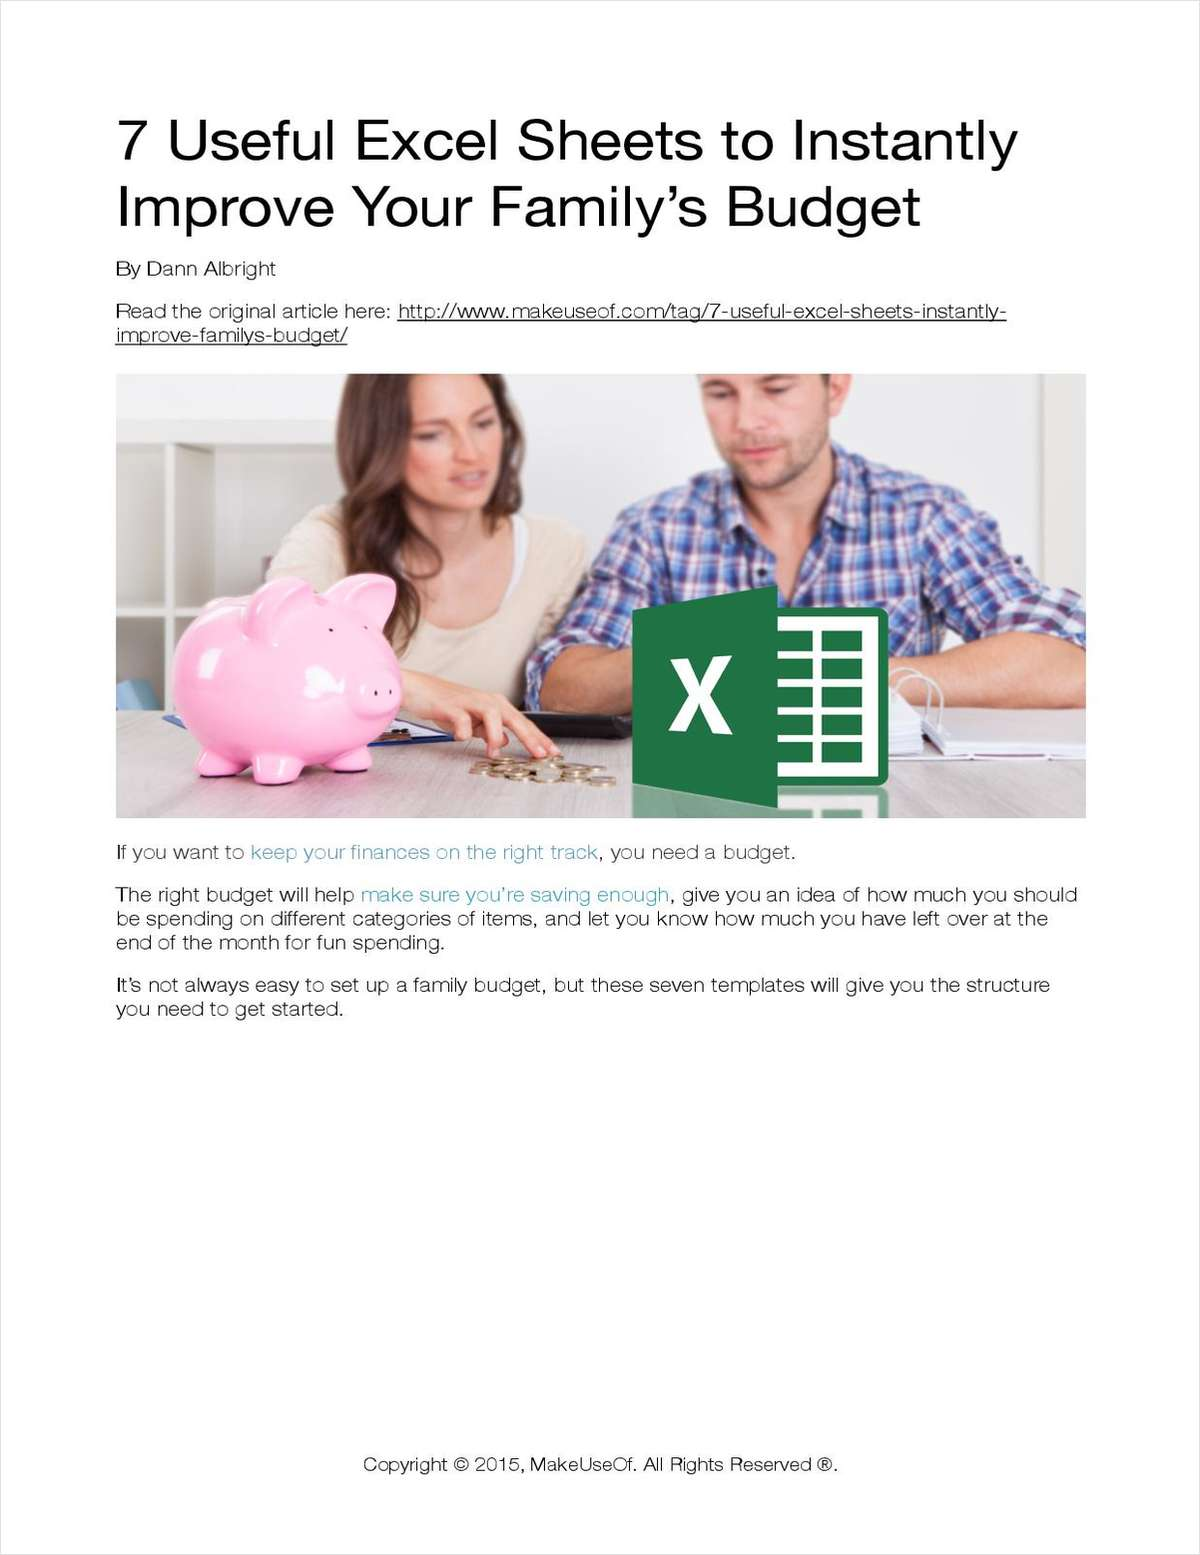 7 Useful Excel Sheets to Instantly Improve Your Family's Budget